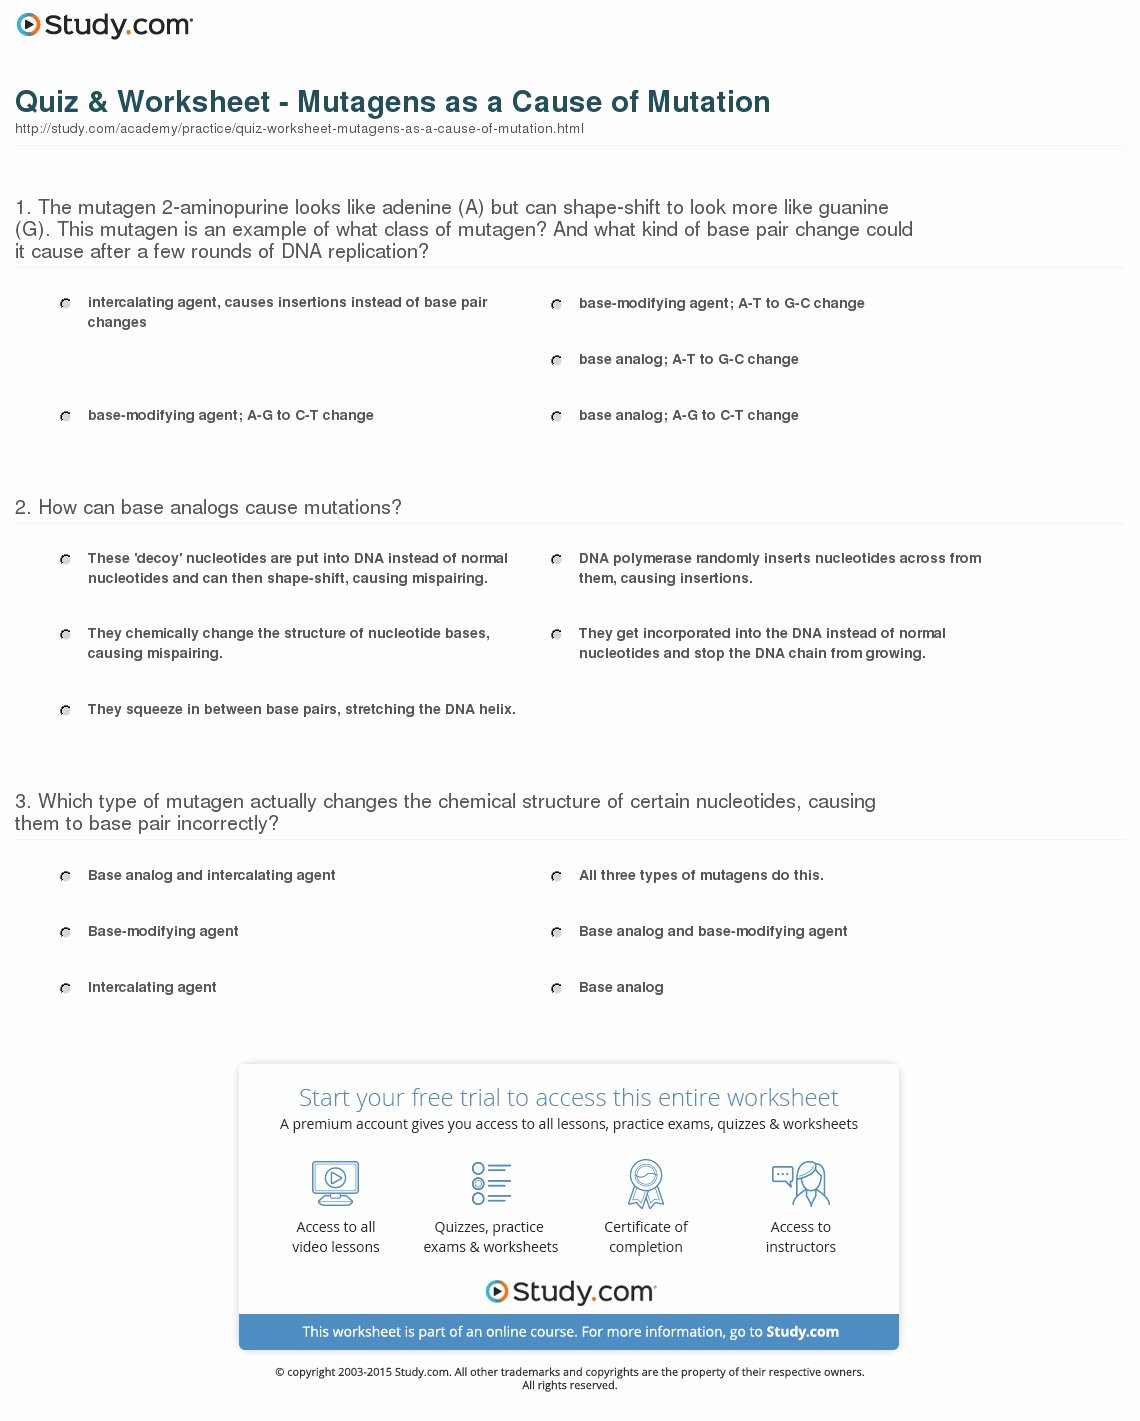 Dna Mutations Practice Worksheet Answers Best Of Quiz & Worksheet Mutagens as A Cause Of Mutation